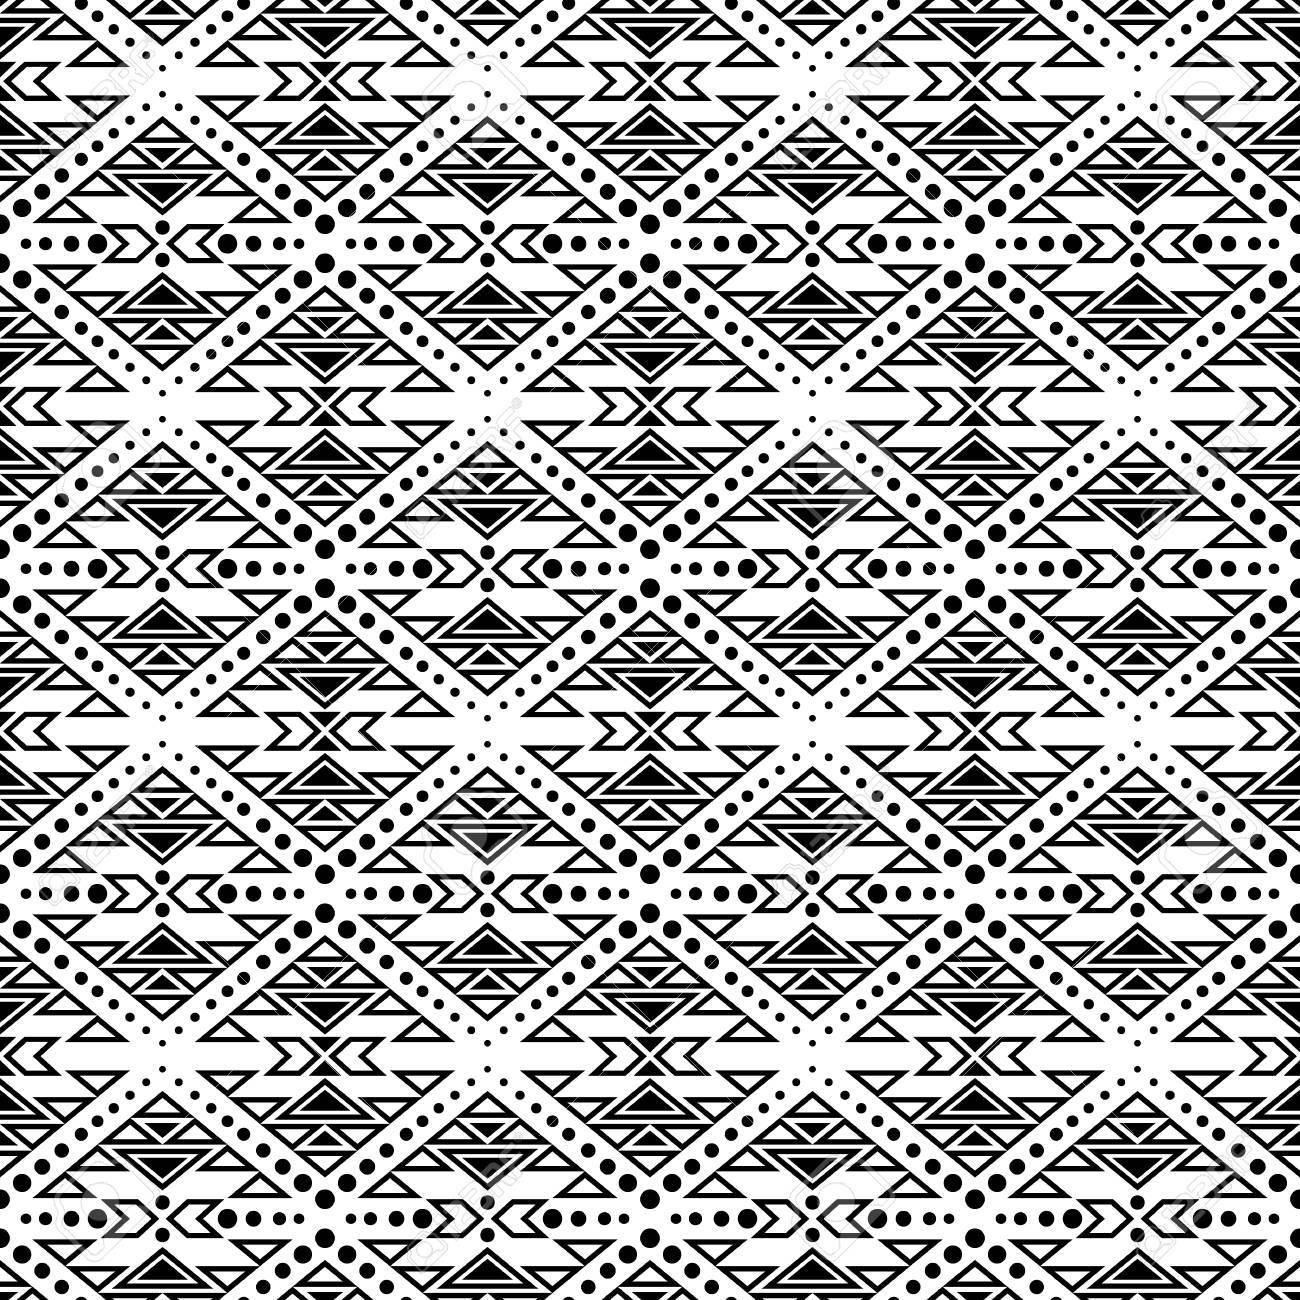 Black And White Seamless Pattern With Tribal Aztec Motives Boho Chic Style Abstract Wallpaper